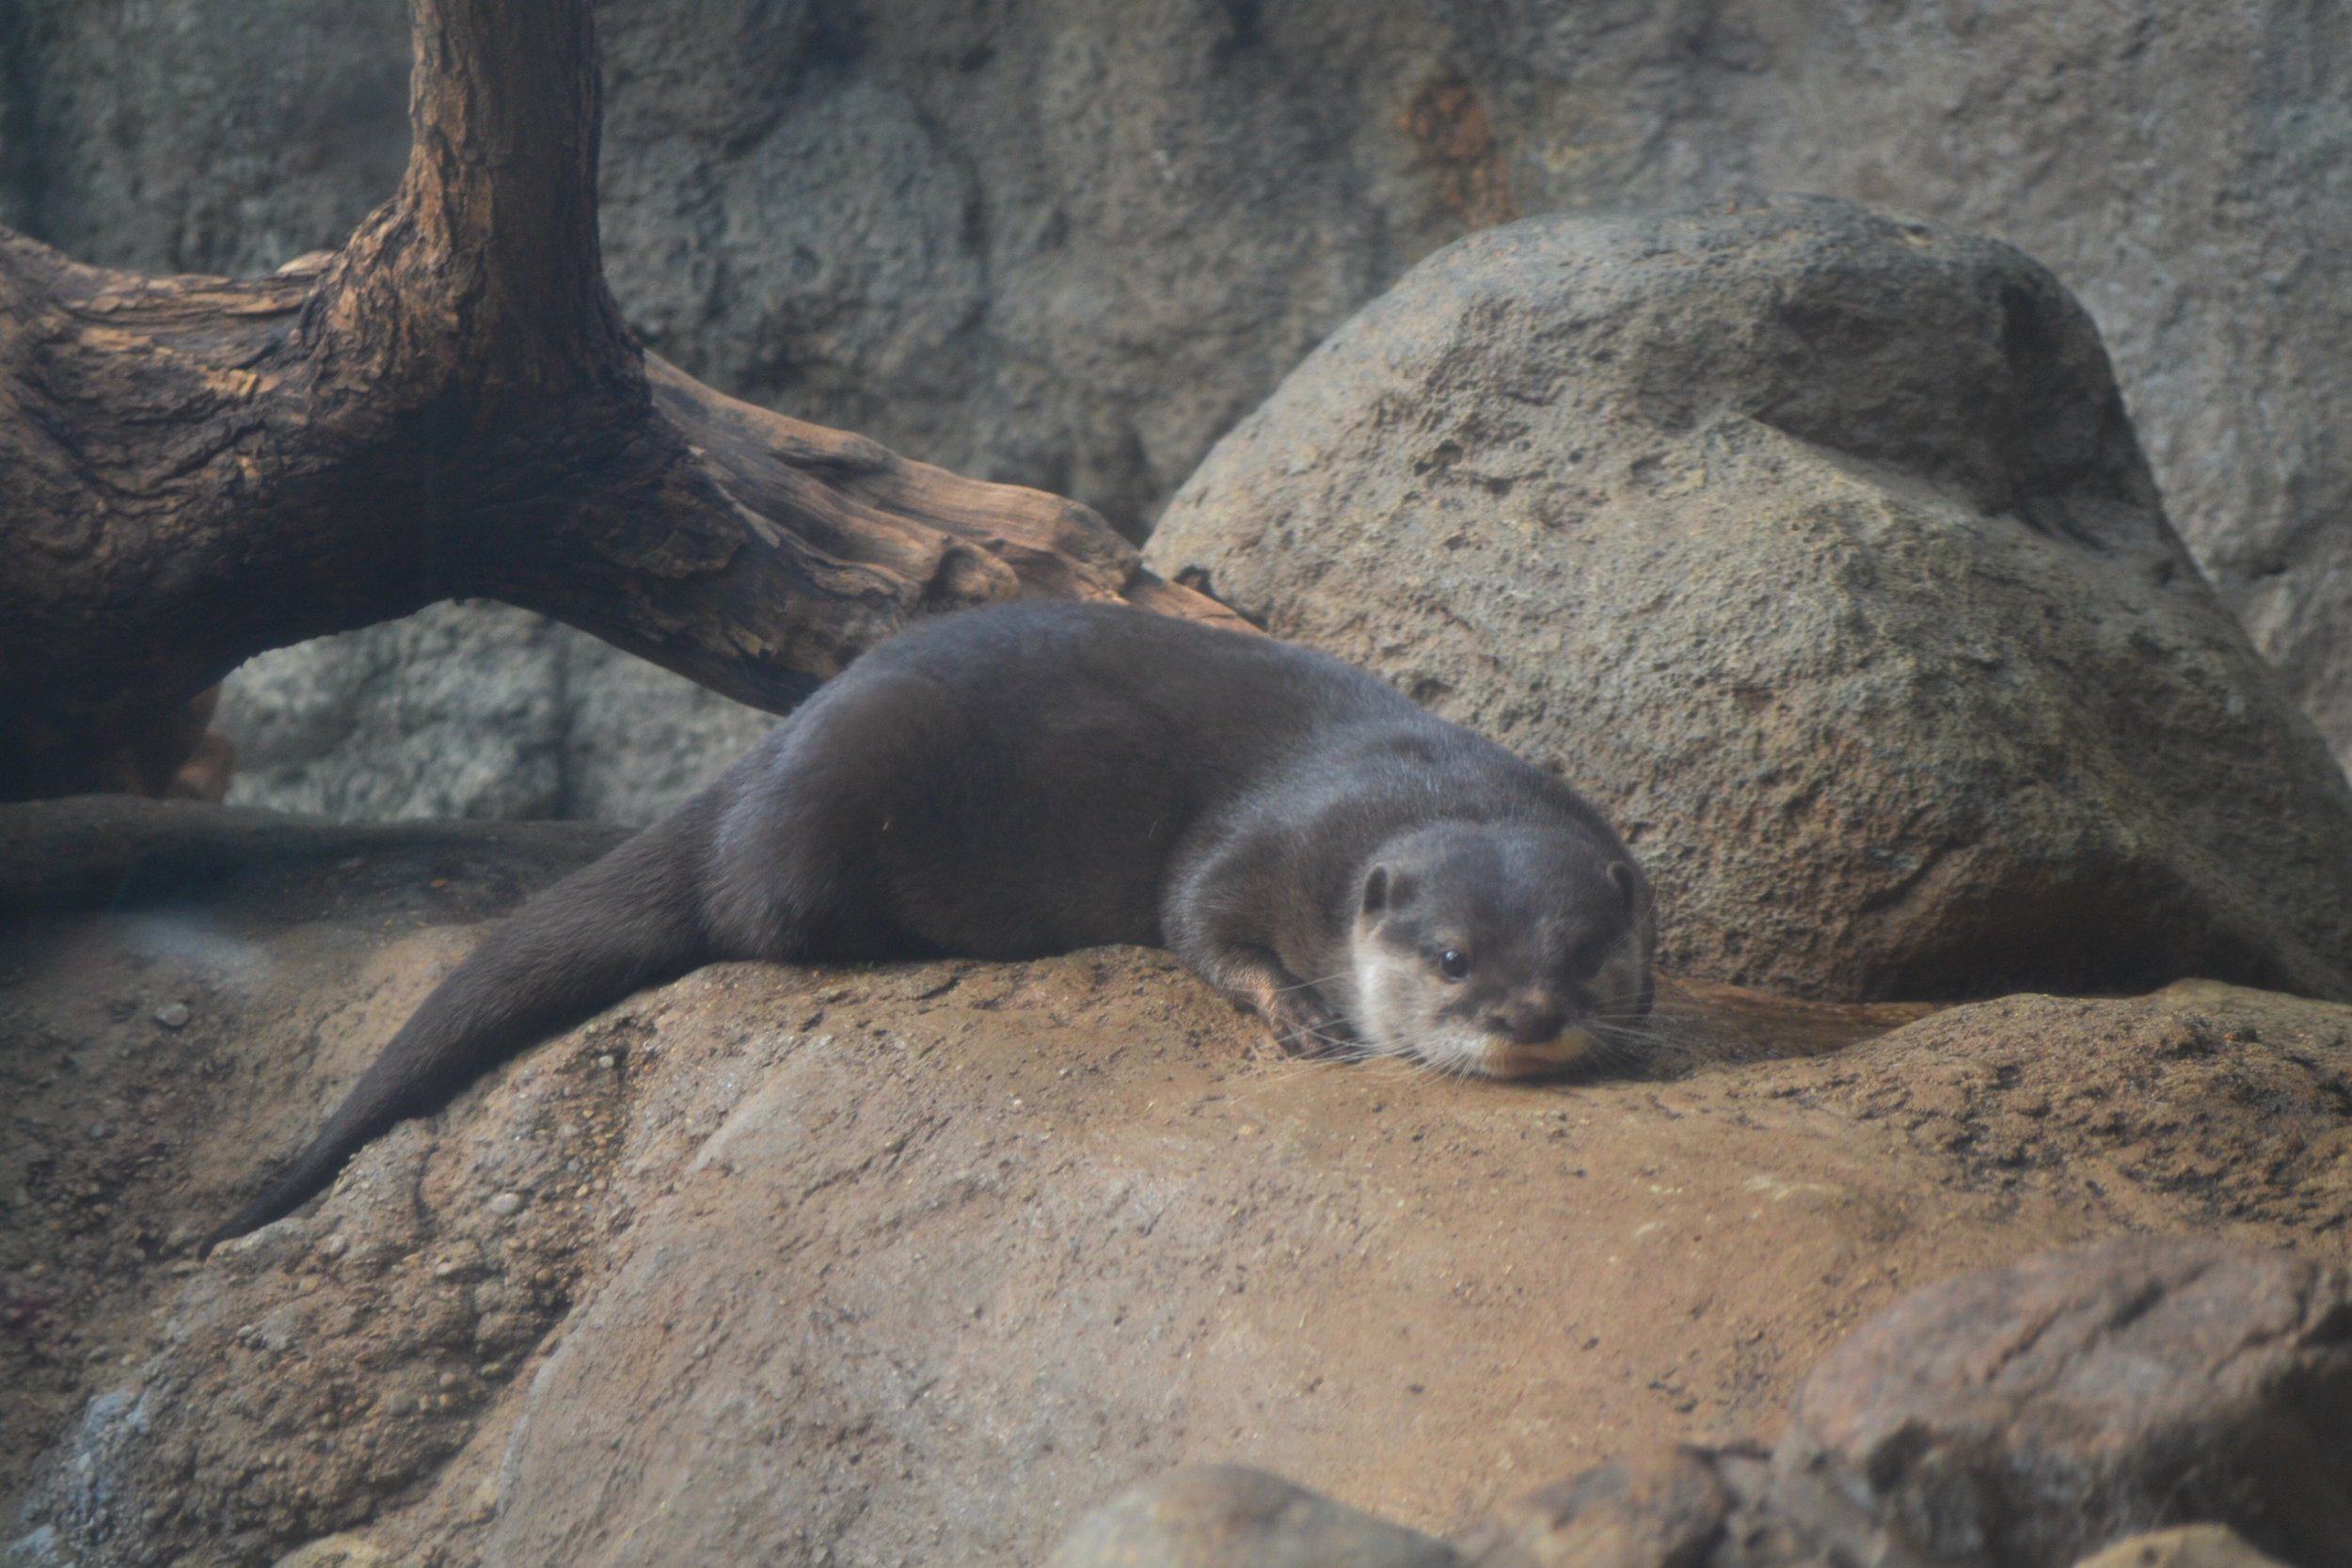 Otter Has a Nice, Quiet Little Rest